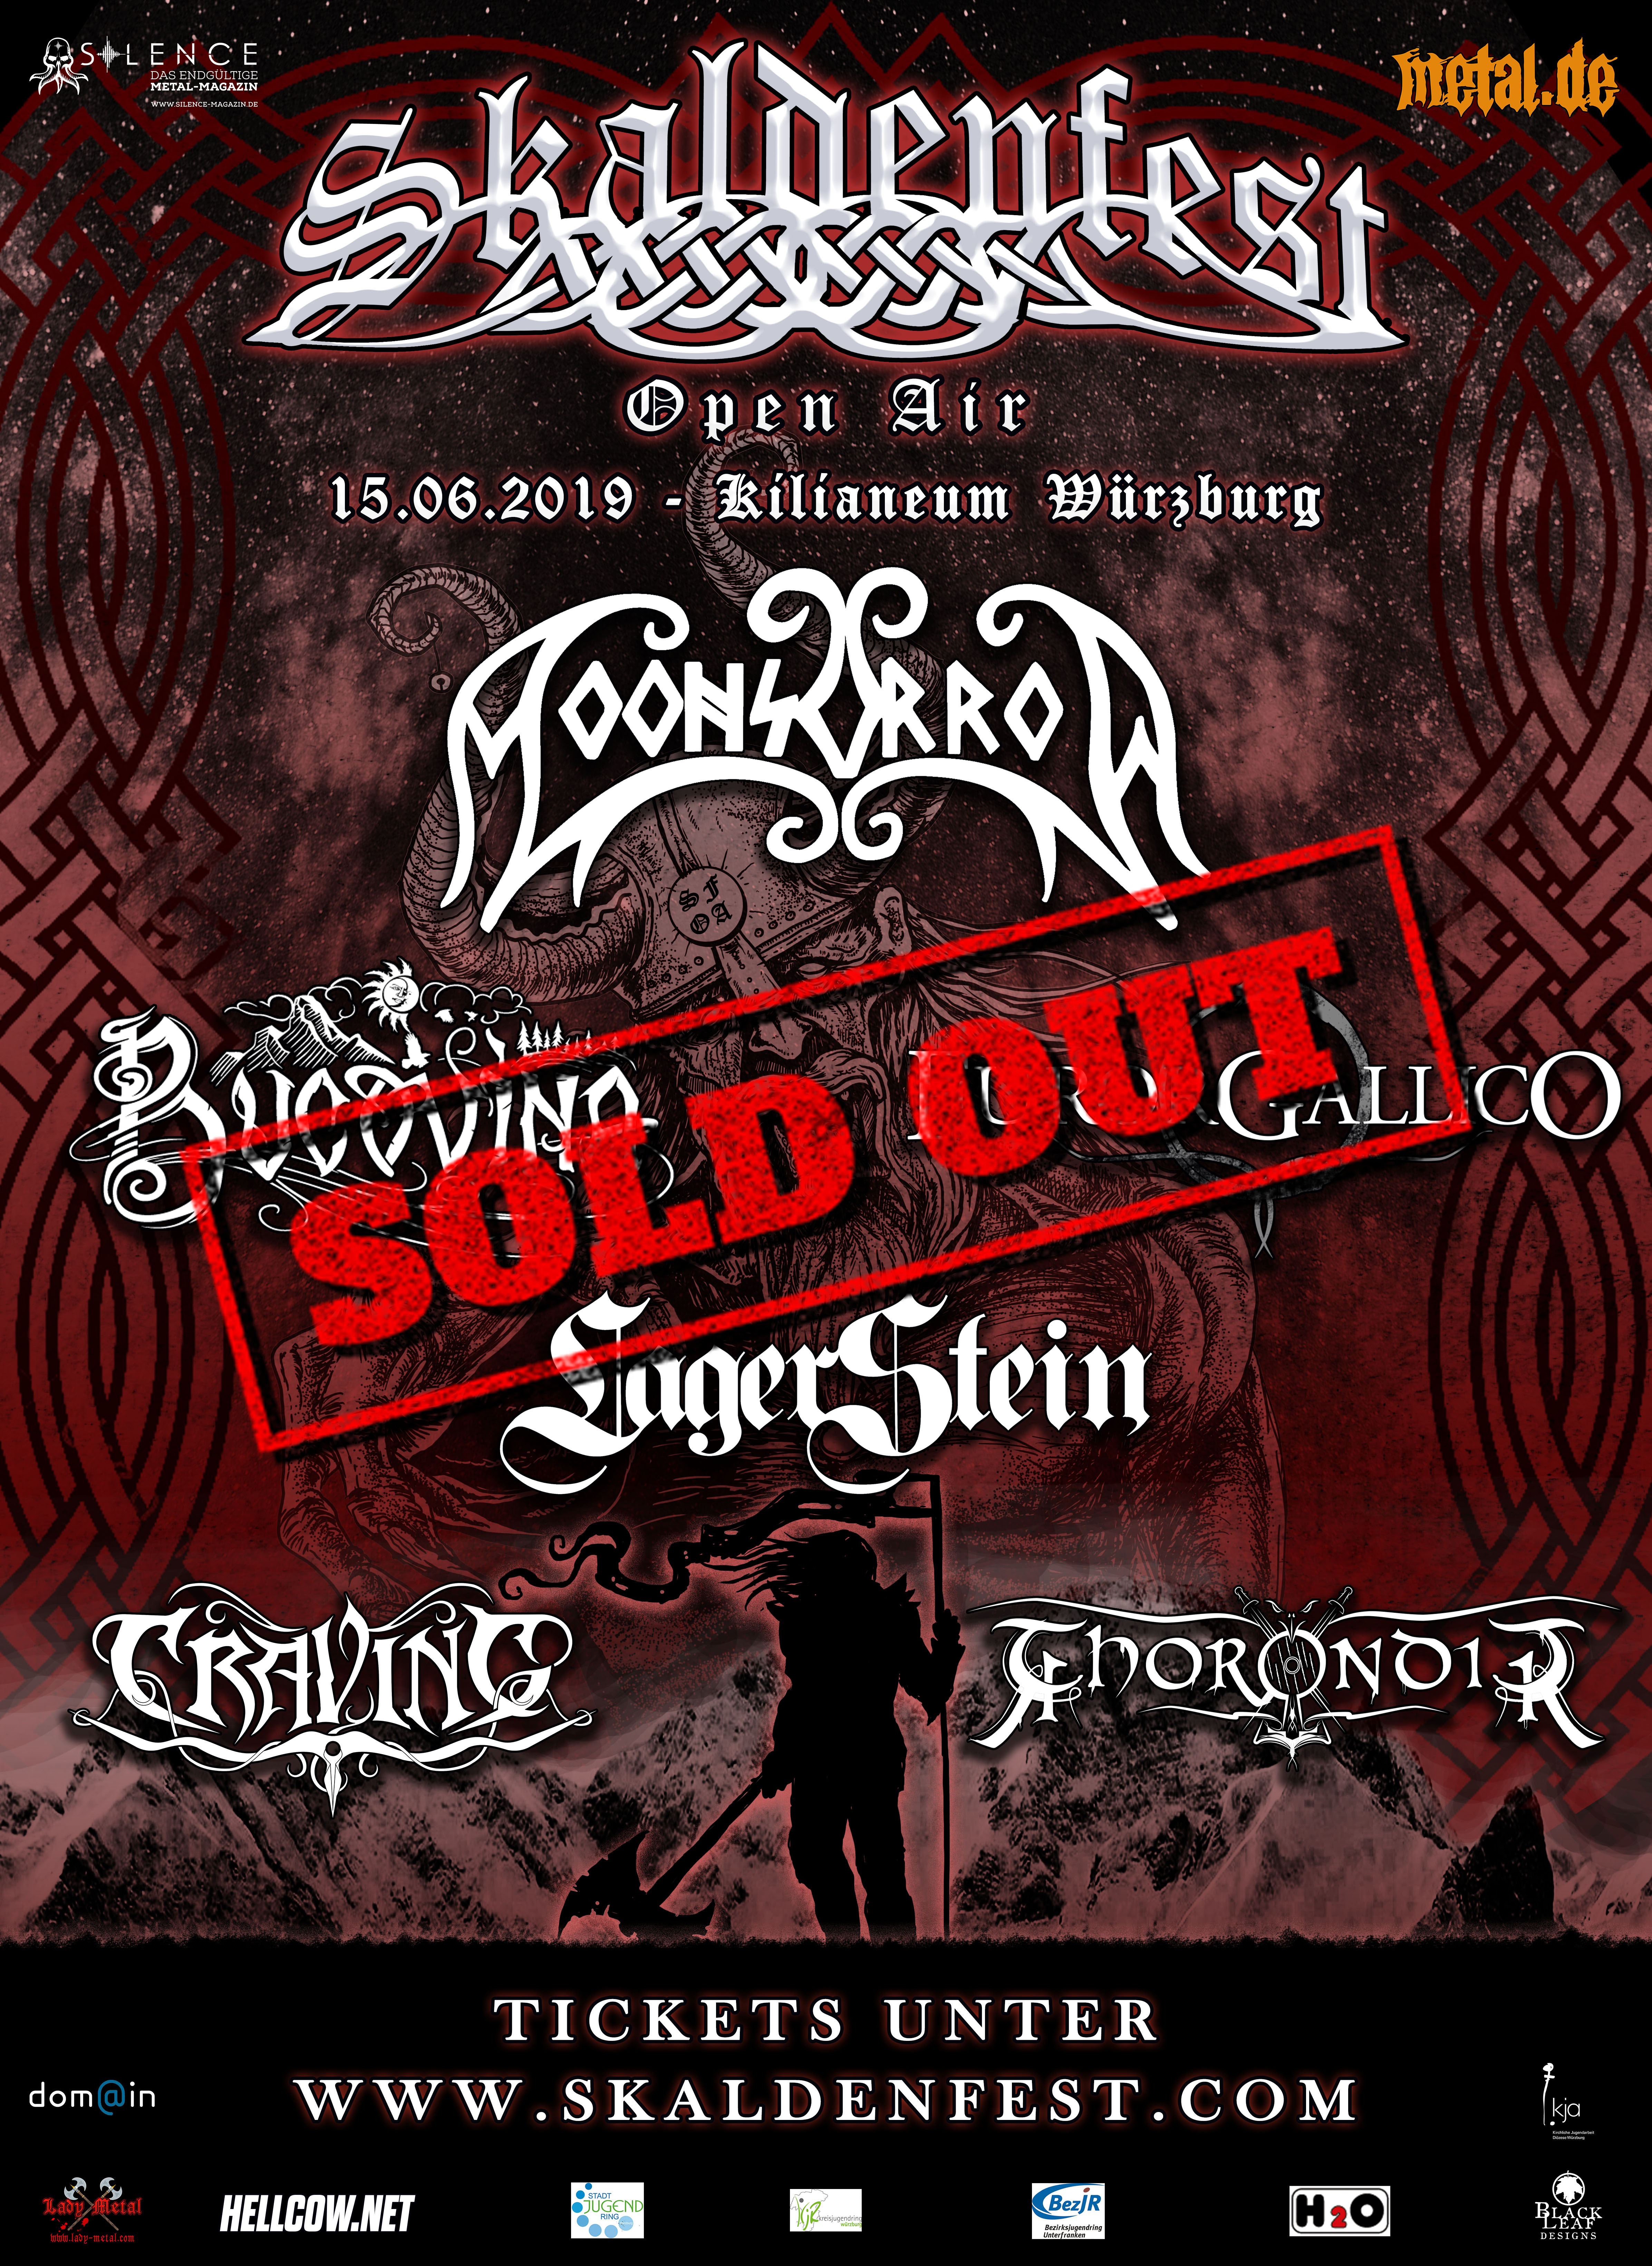 Skaldenfest 2019 SOLD OUT